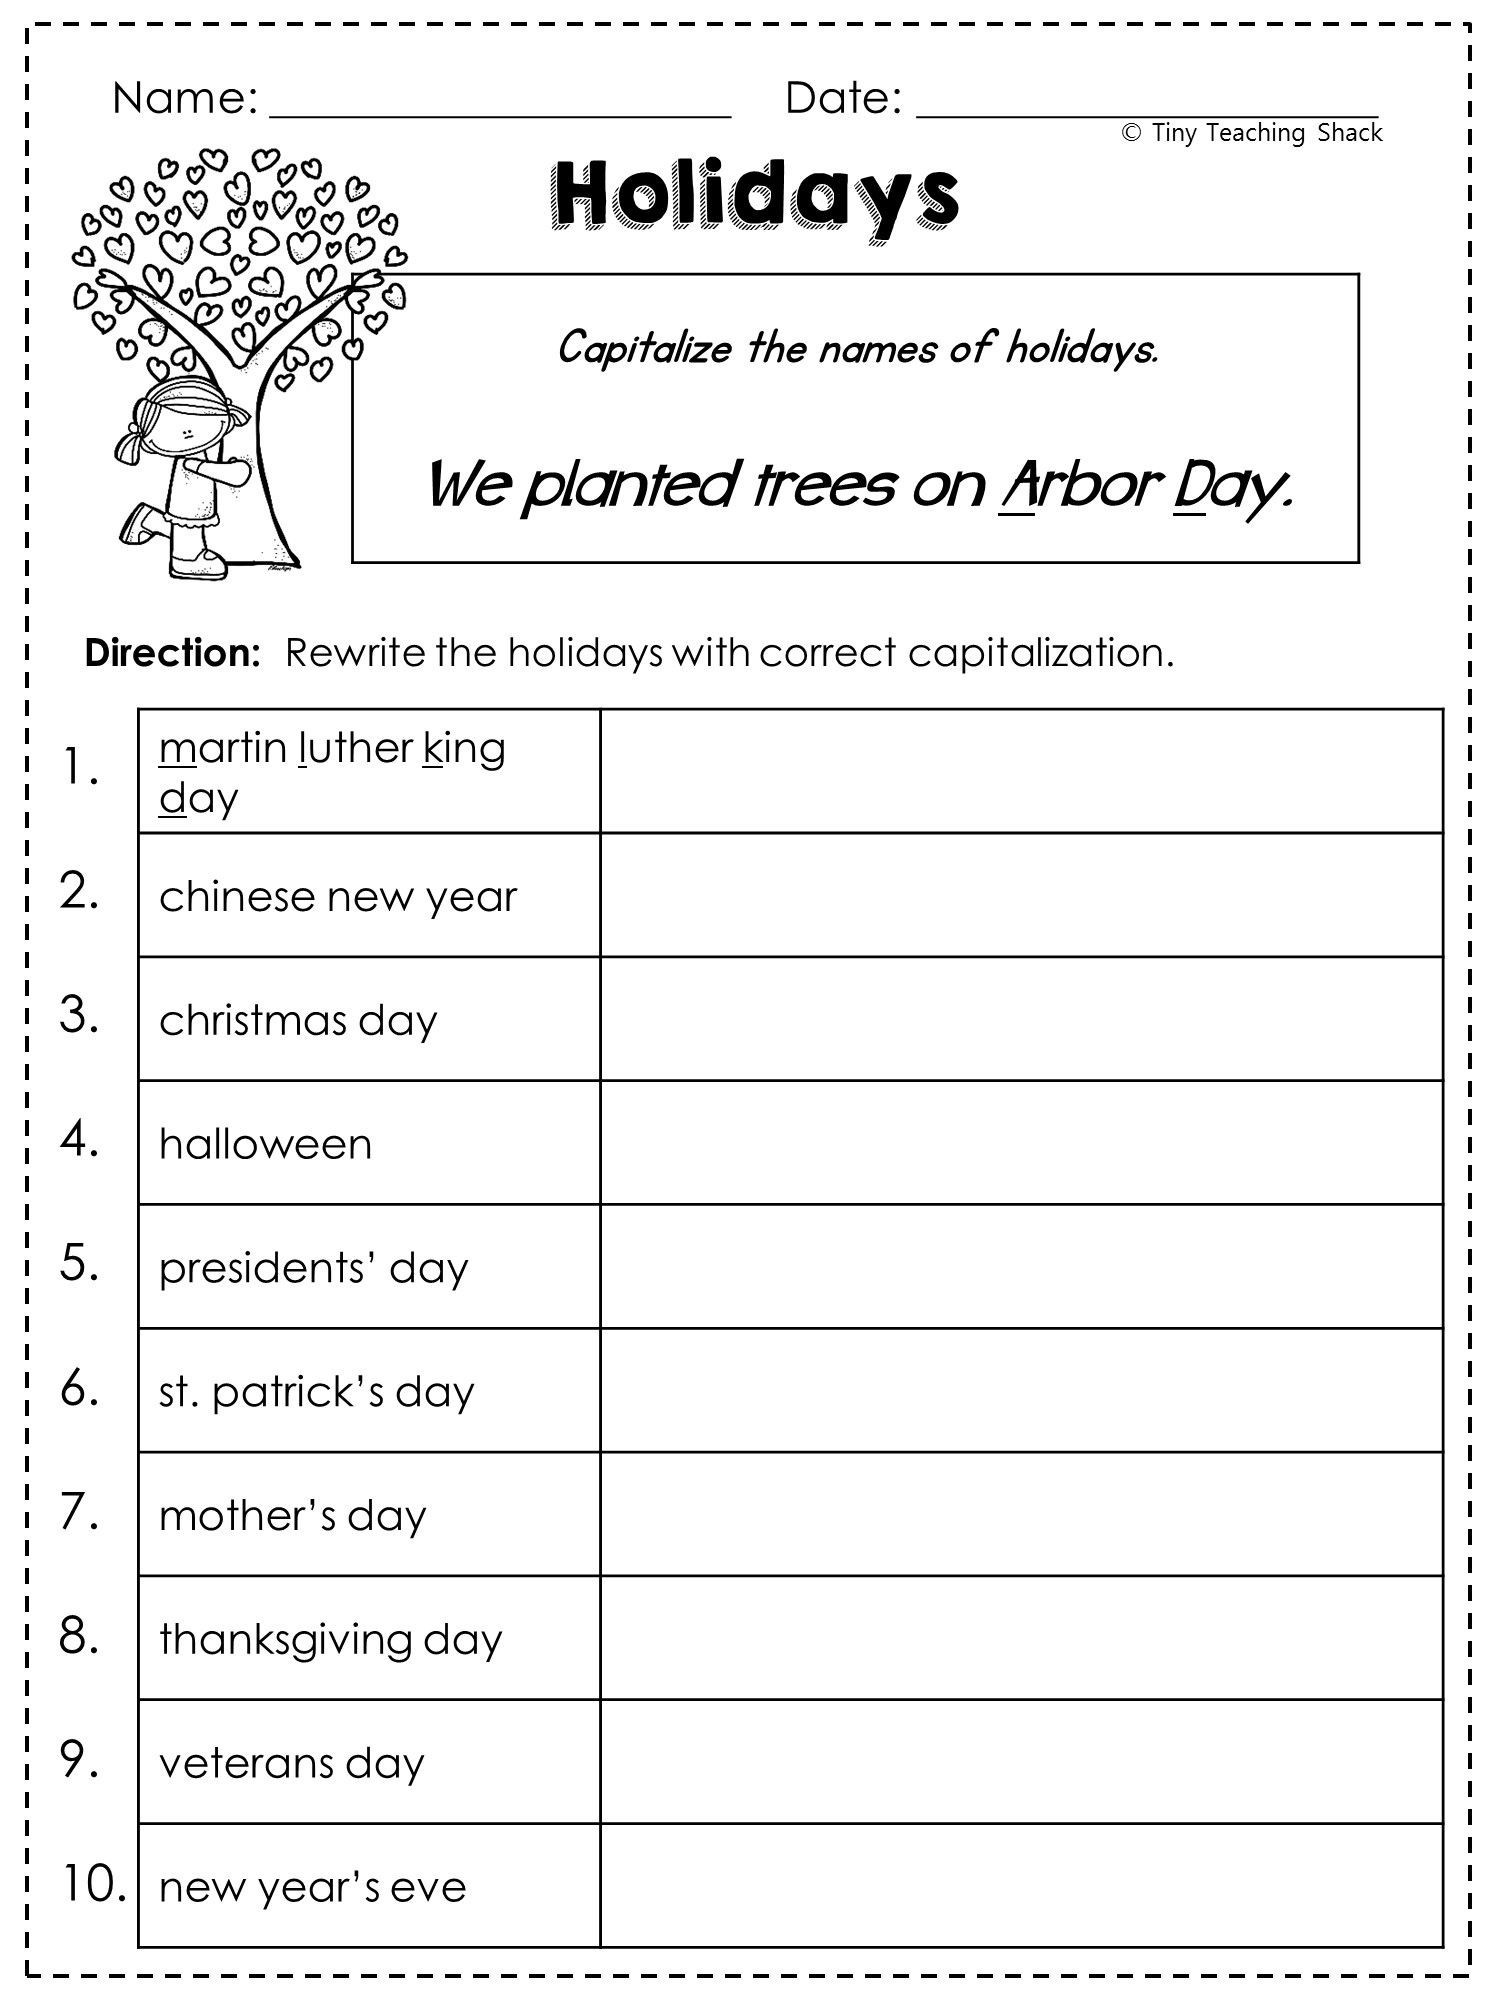 2nd Grade Proper Nouns Worksheet 5 Worksheet Proper Nouns Worksheet Grammar Worksheets Schools